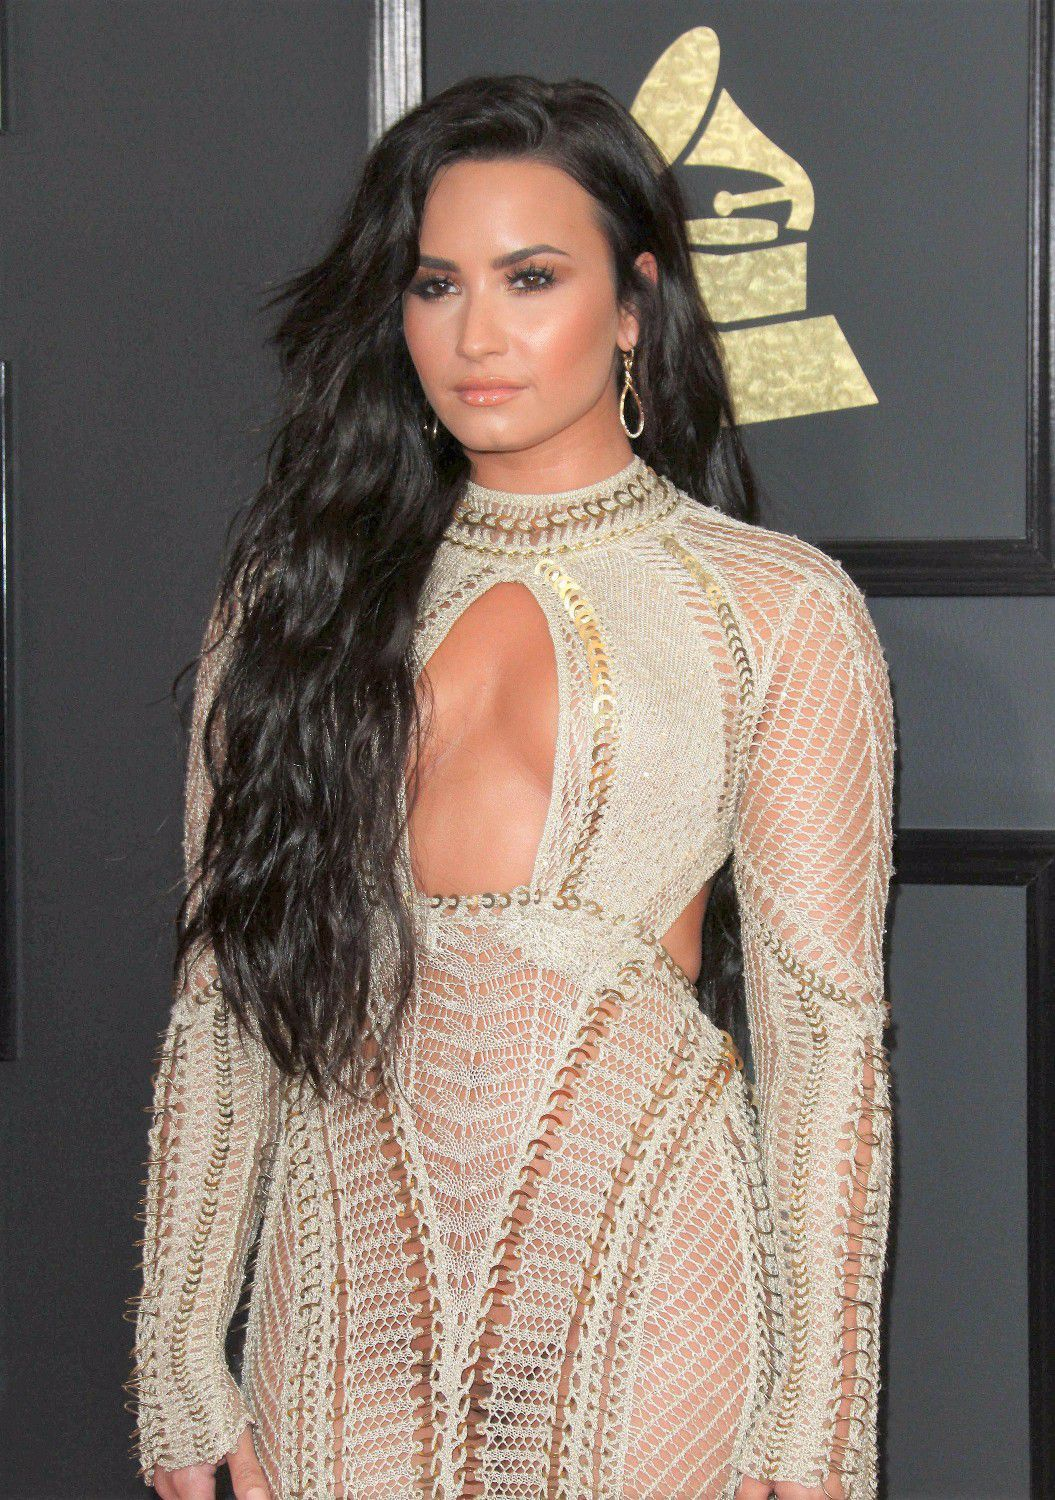 The Most Scandalous See-Through Outfits In Red-Carpet ...